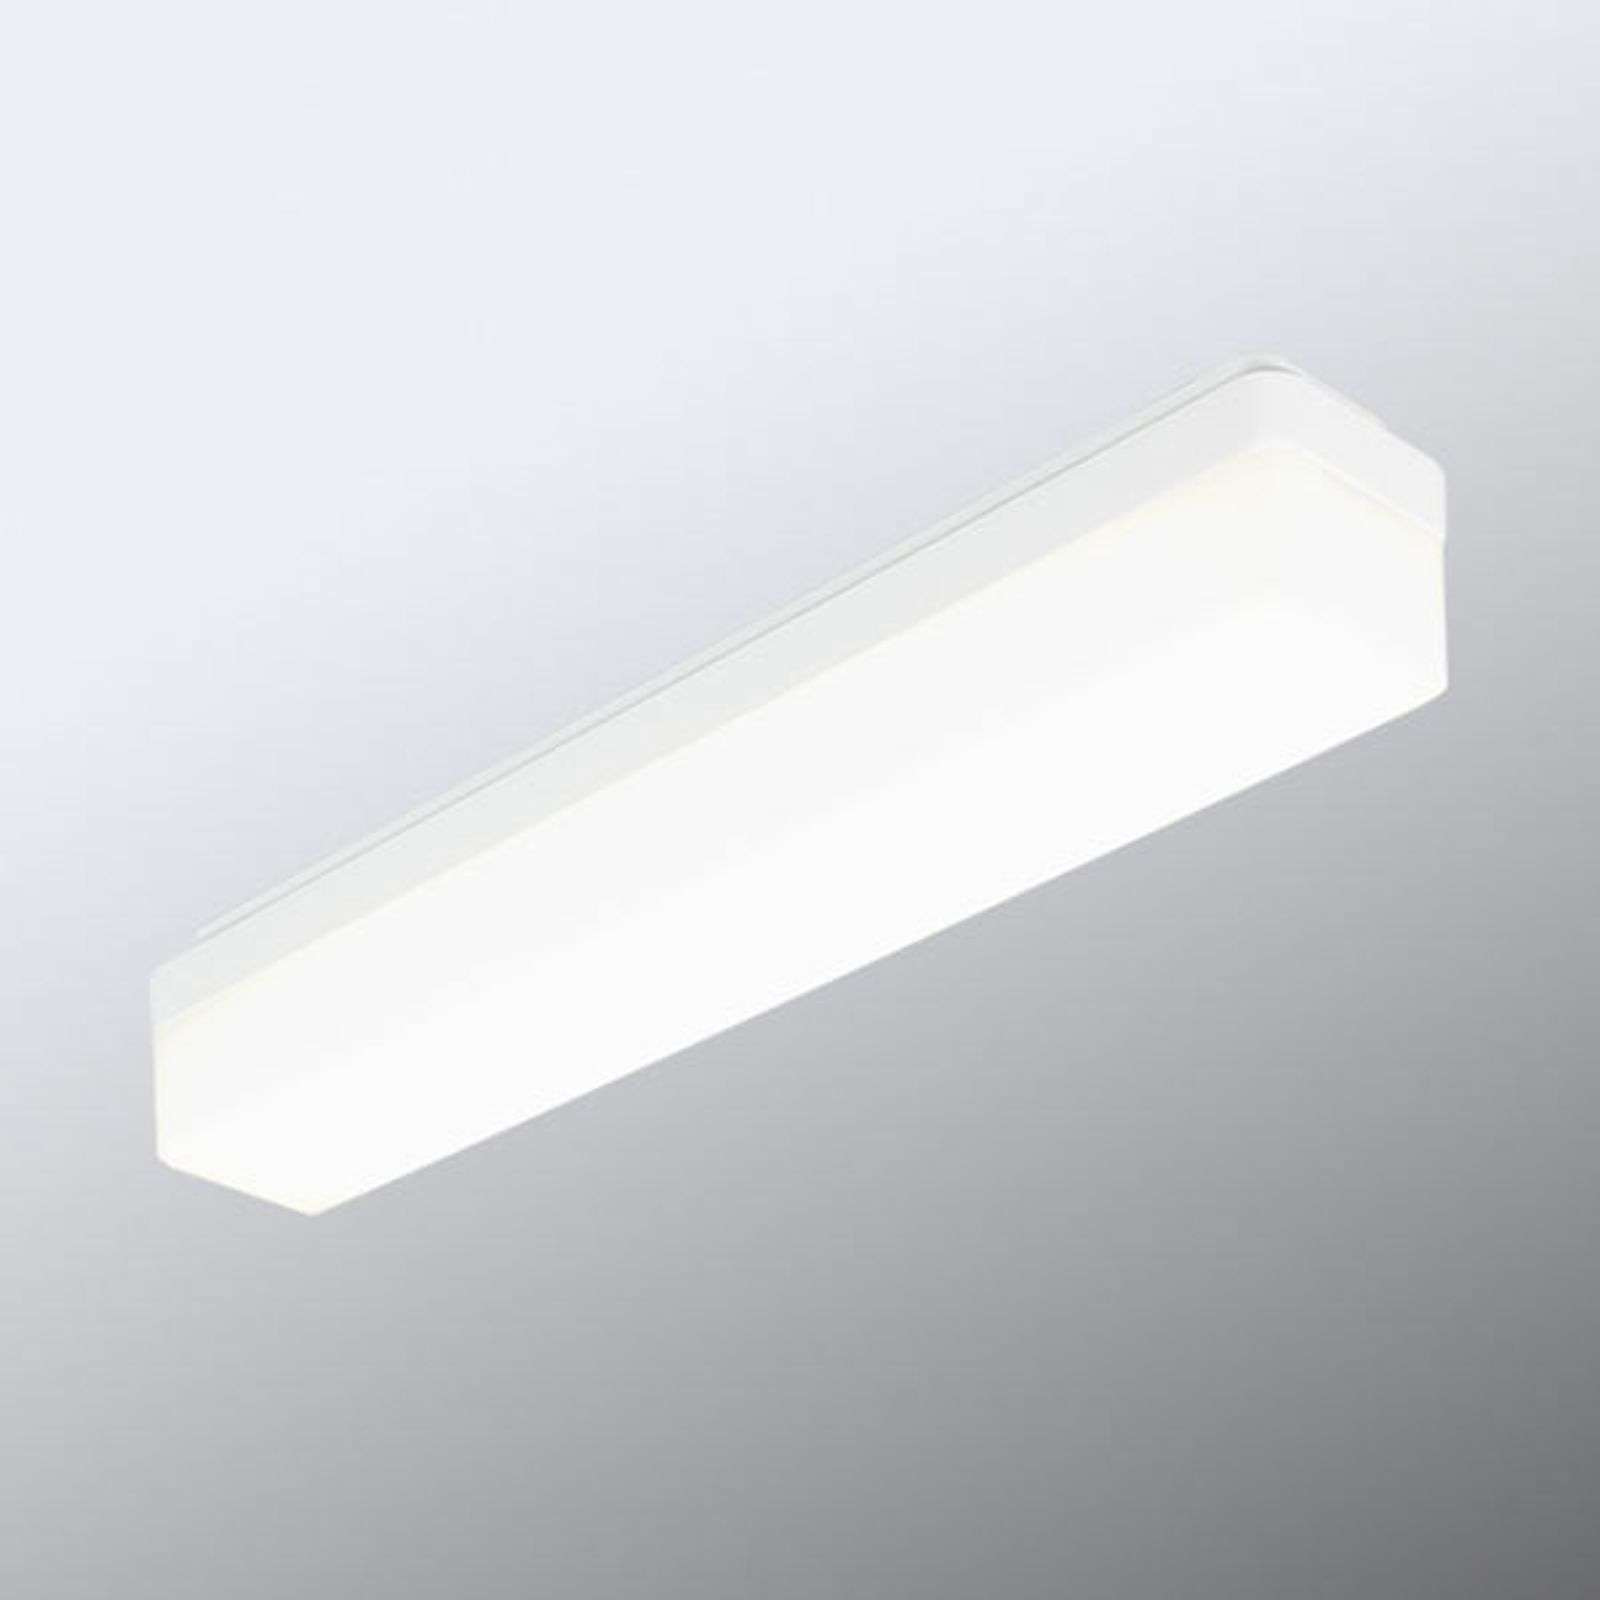 Applique LED A70-W365 1000 HF 14W 4 000K